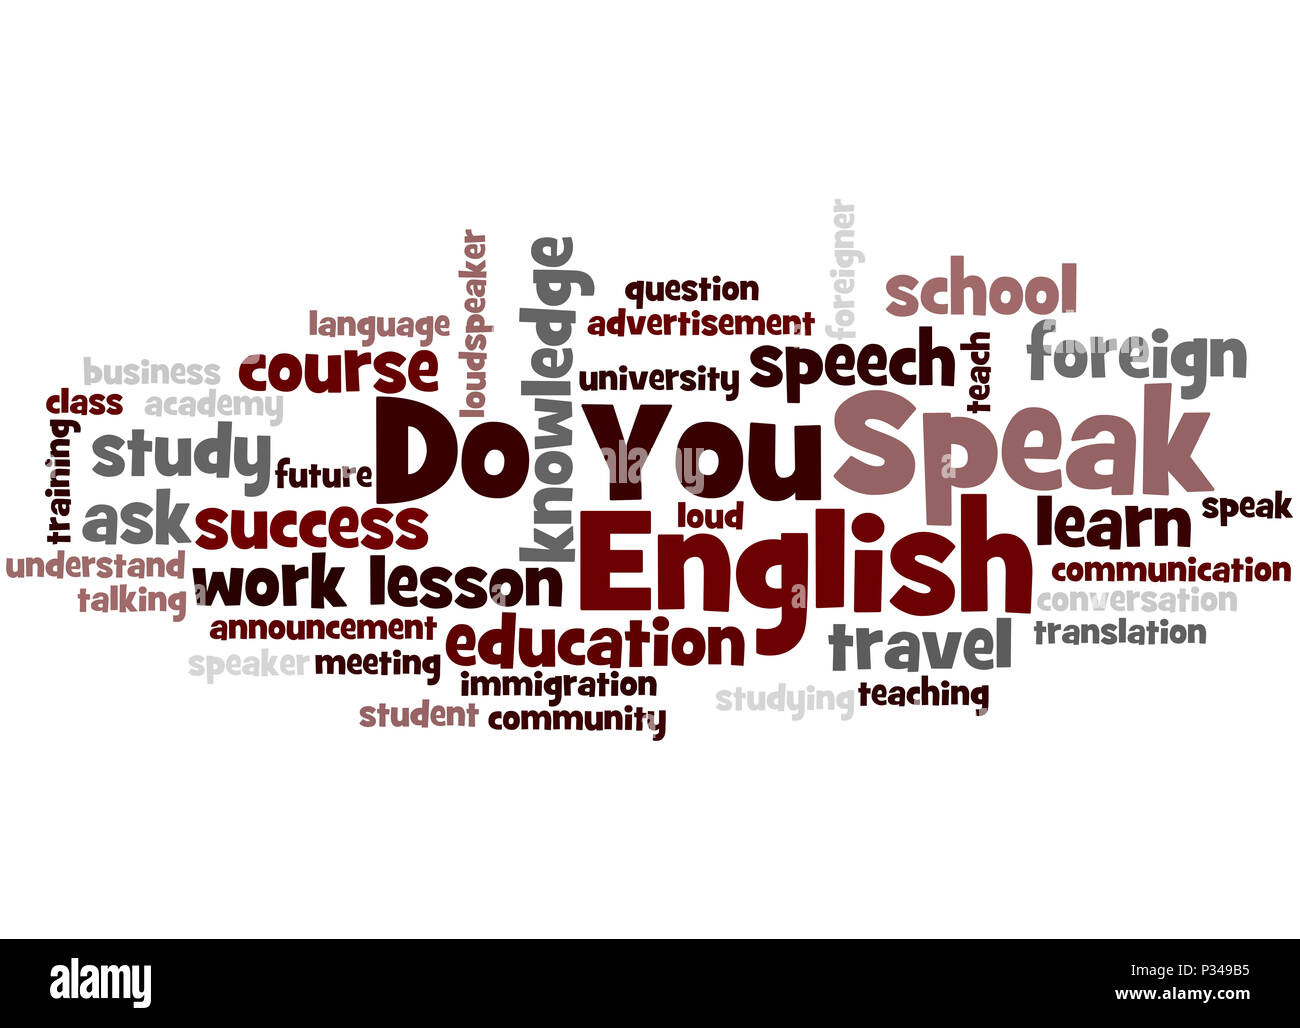 Do You Speak English, word cloud concept on white background. - Stock Image